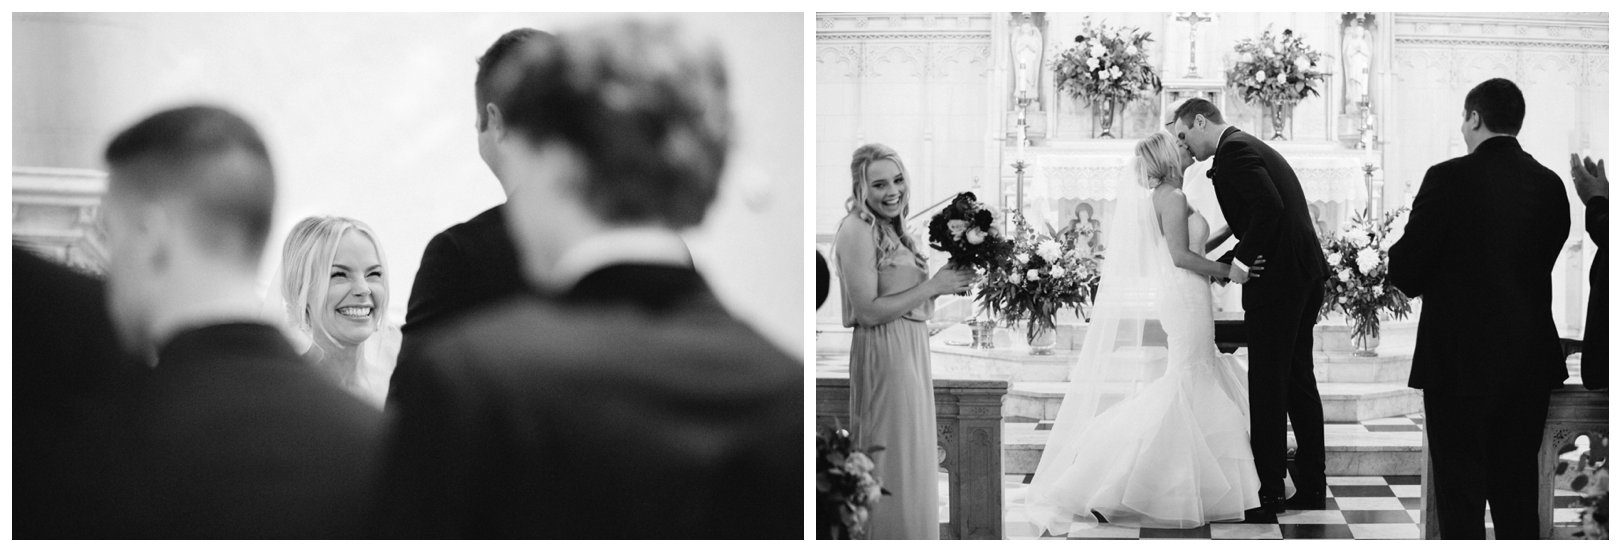 lauren muckler photography_fine art film wedding photography_st louis_photography_1355.jpg